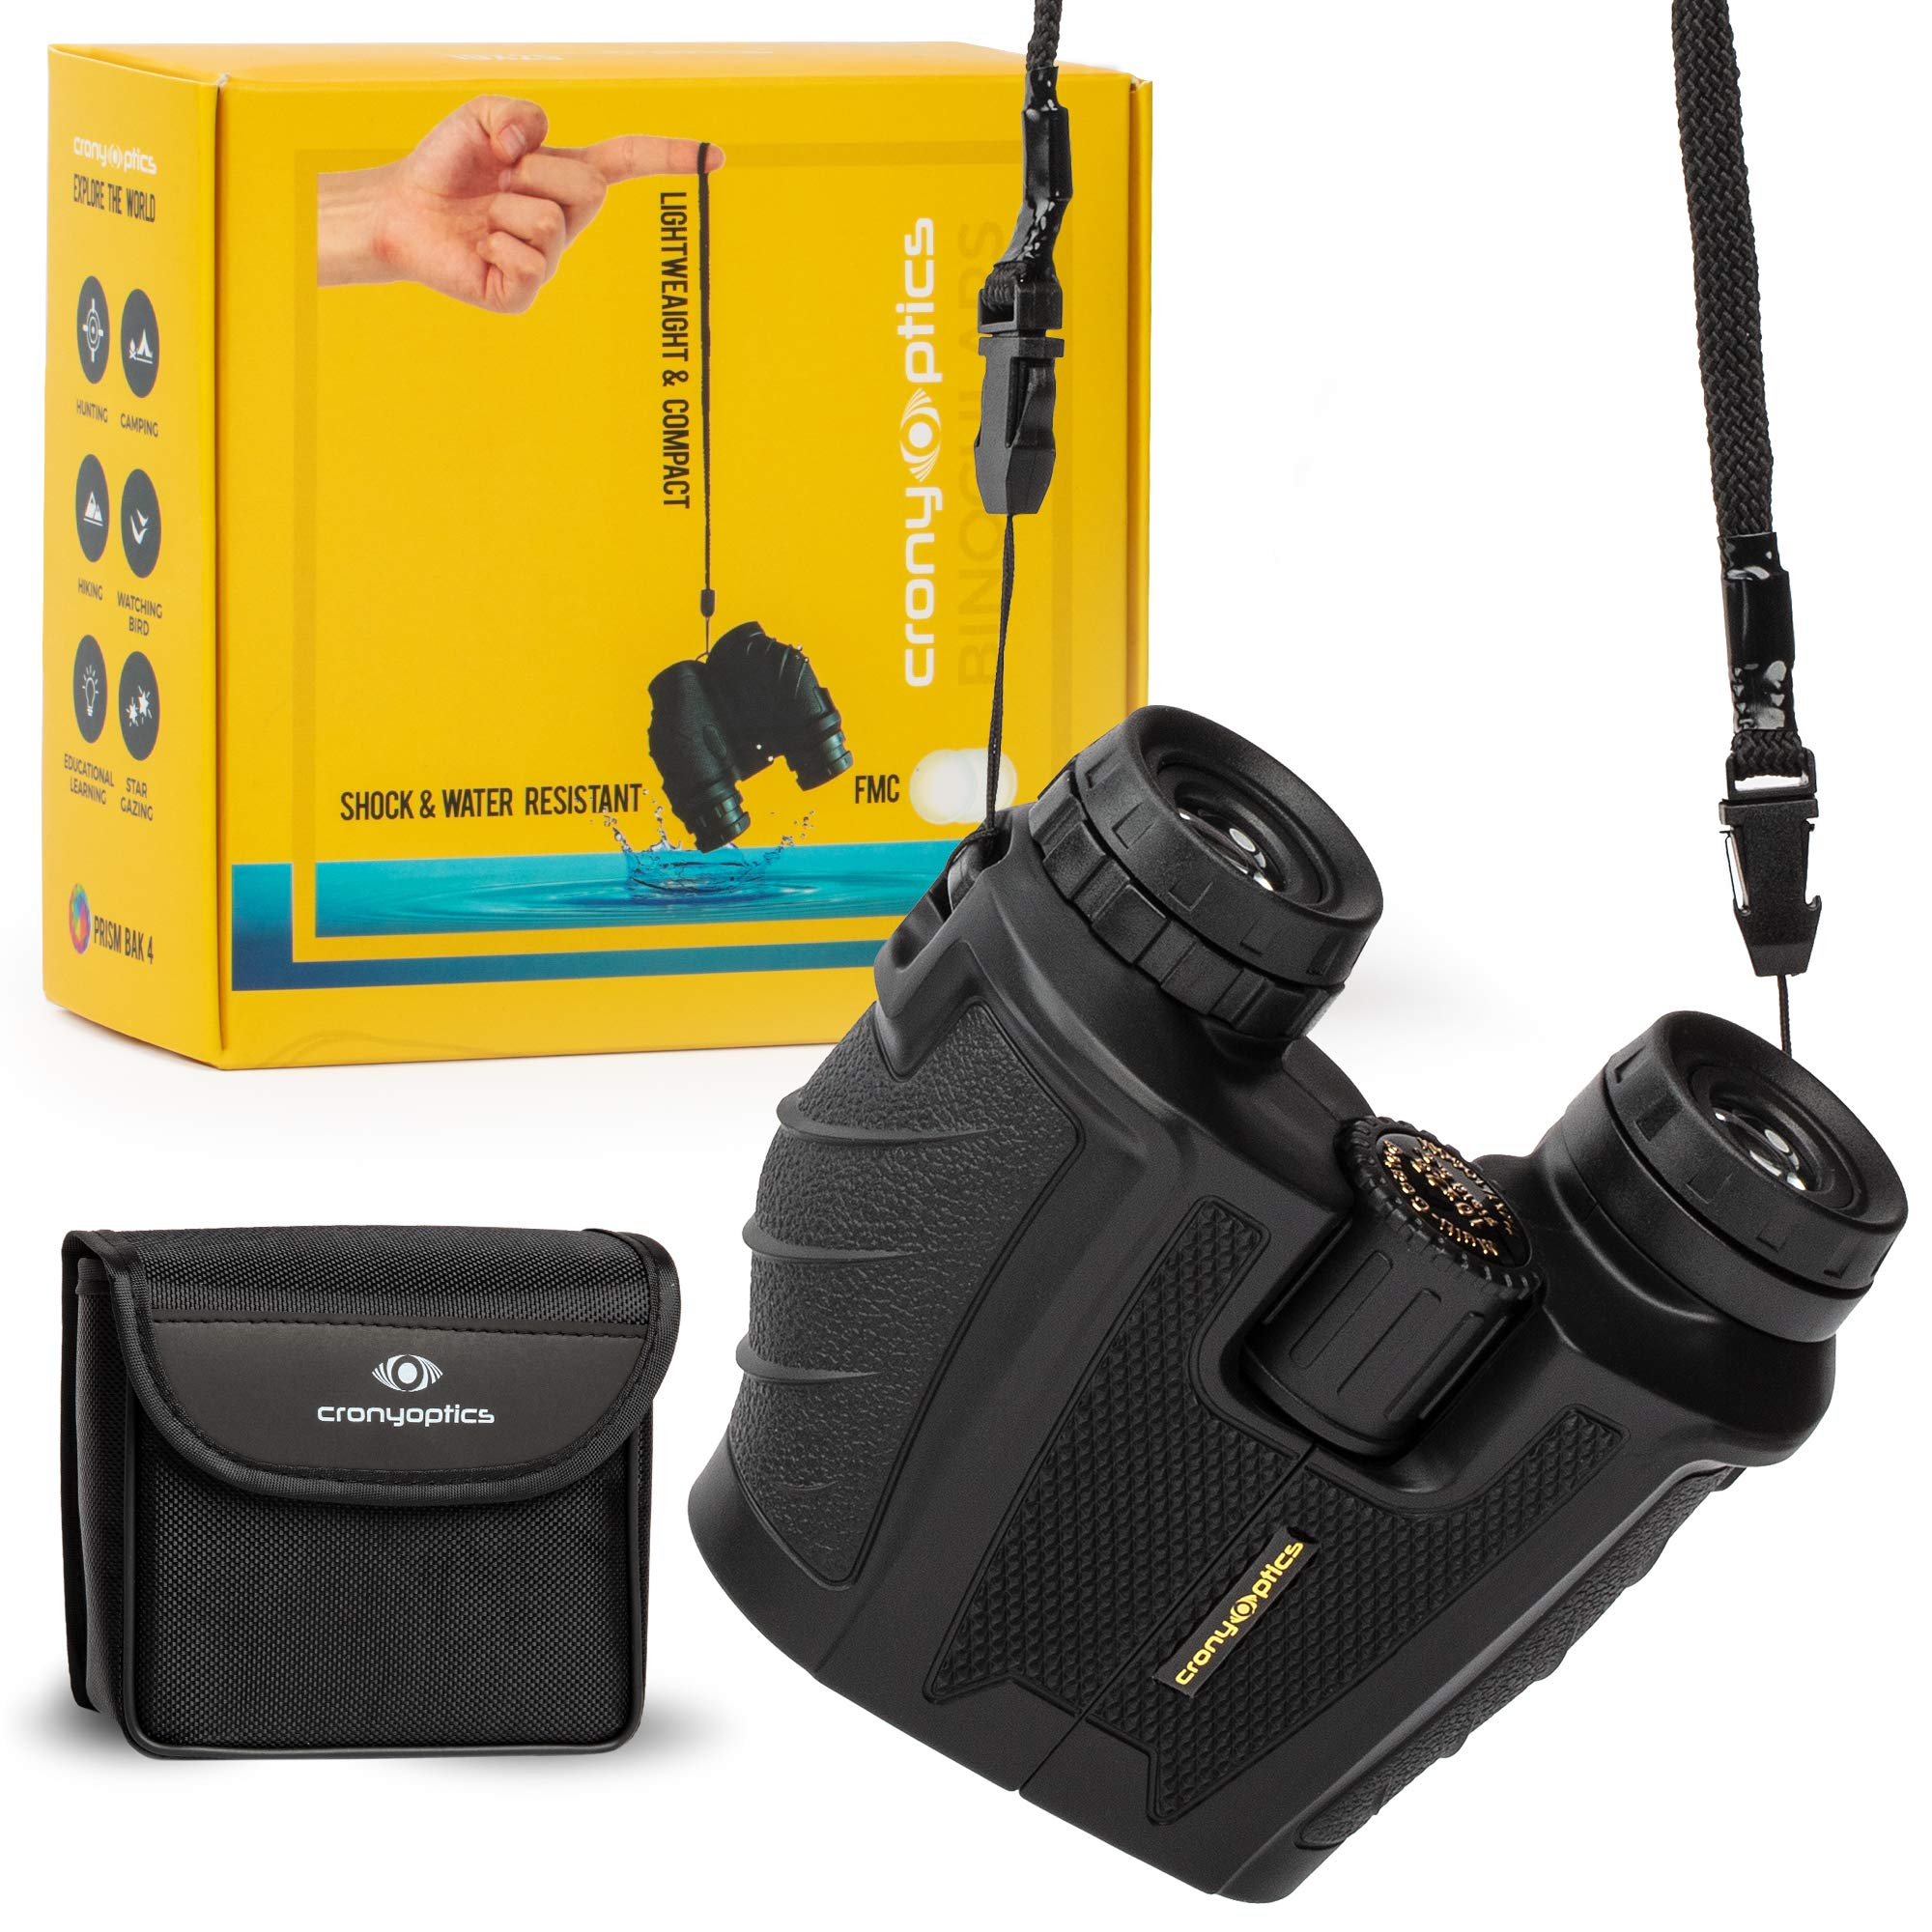 Lightweight and Compact Binoculars for Adults 10x25 - High Powered Bino Best for Bird Watching, Travel and Stargazing - Small and Water-Resistant by Cronyoptics